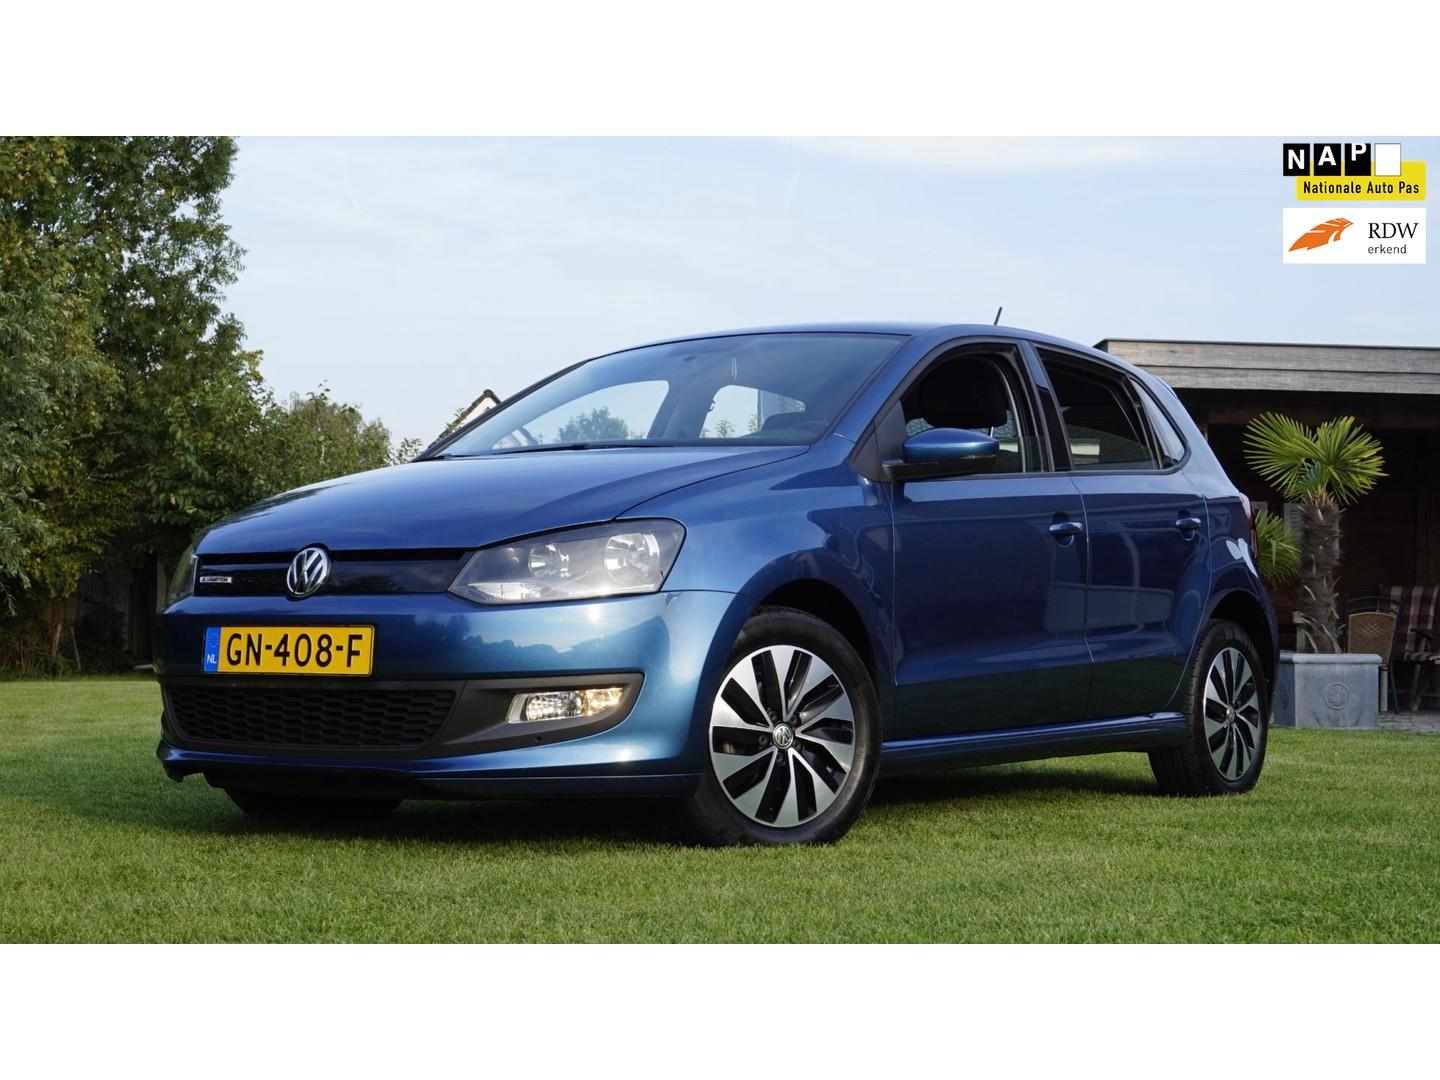 Volkswagen Polo 1.4 tdi bluemotion navigatie airco 5 drs